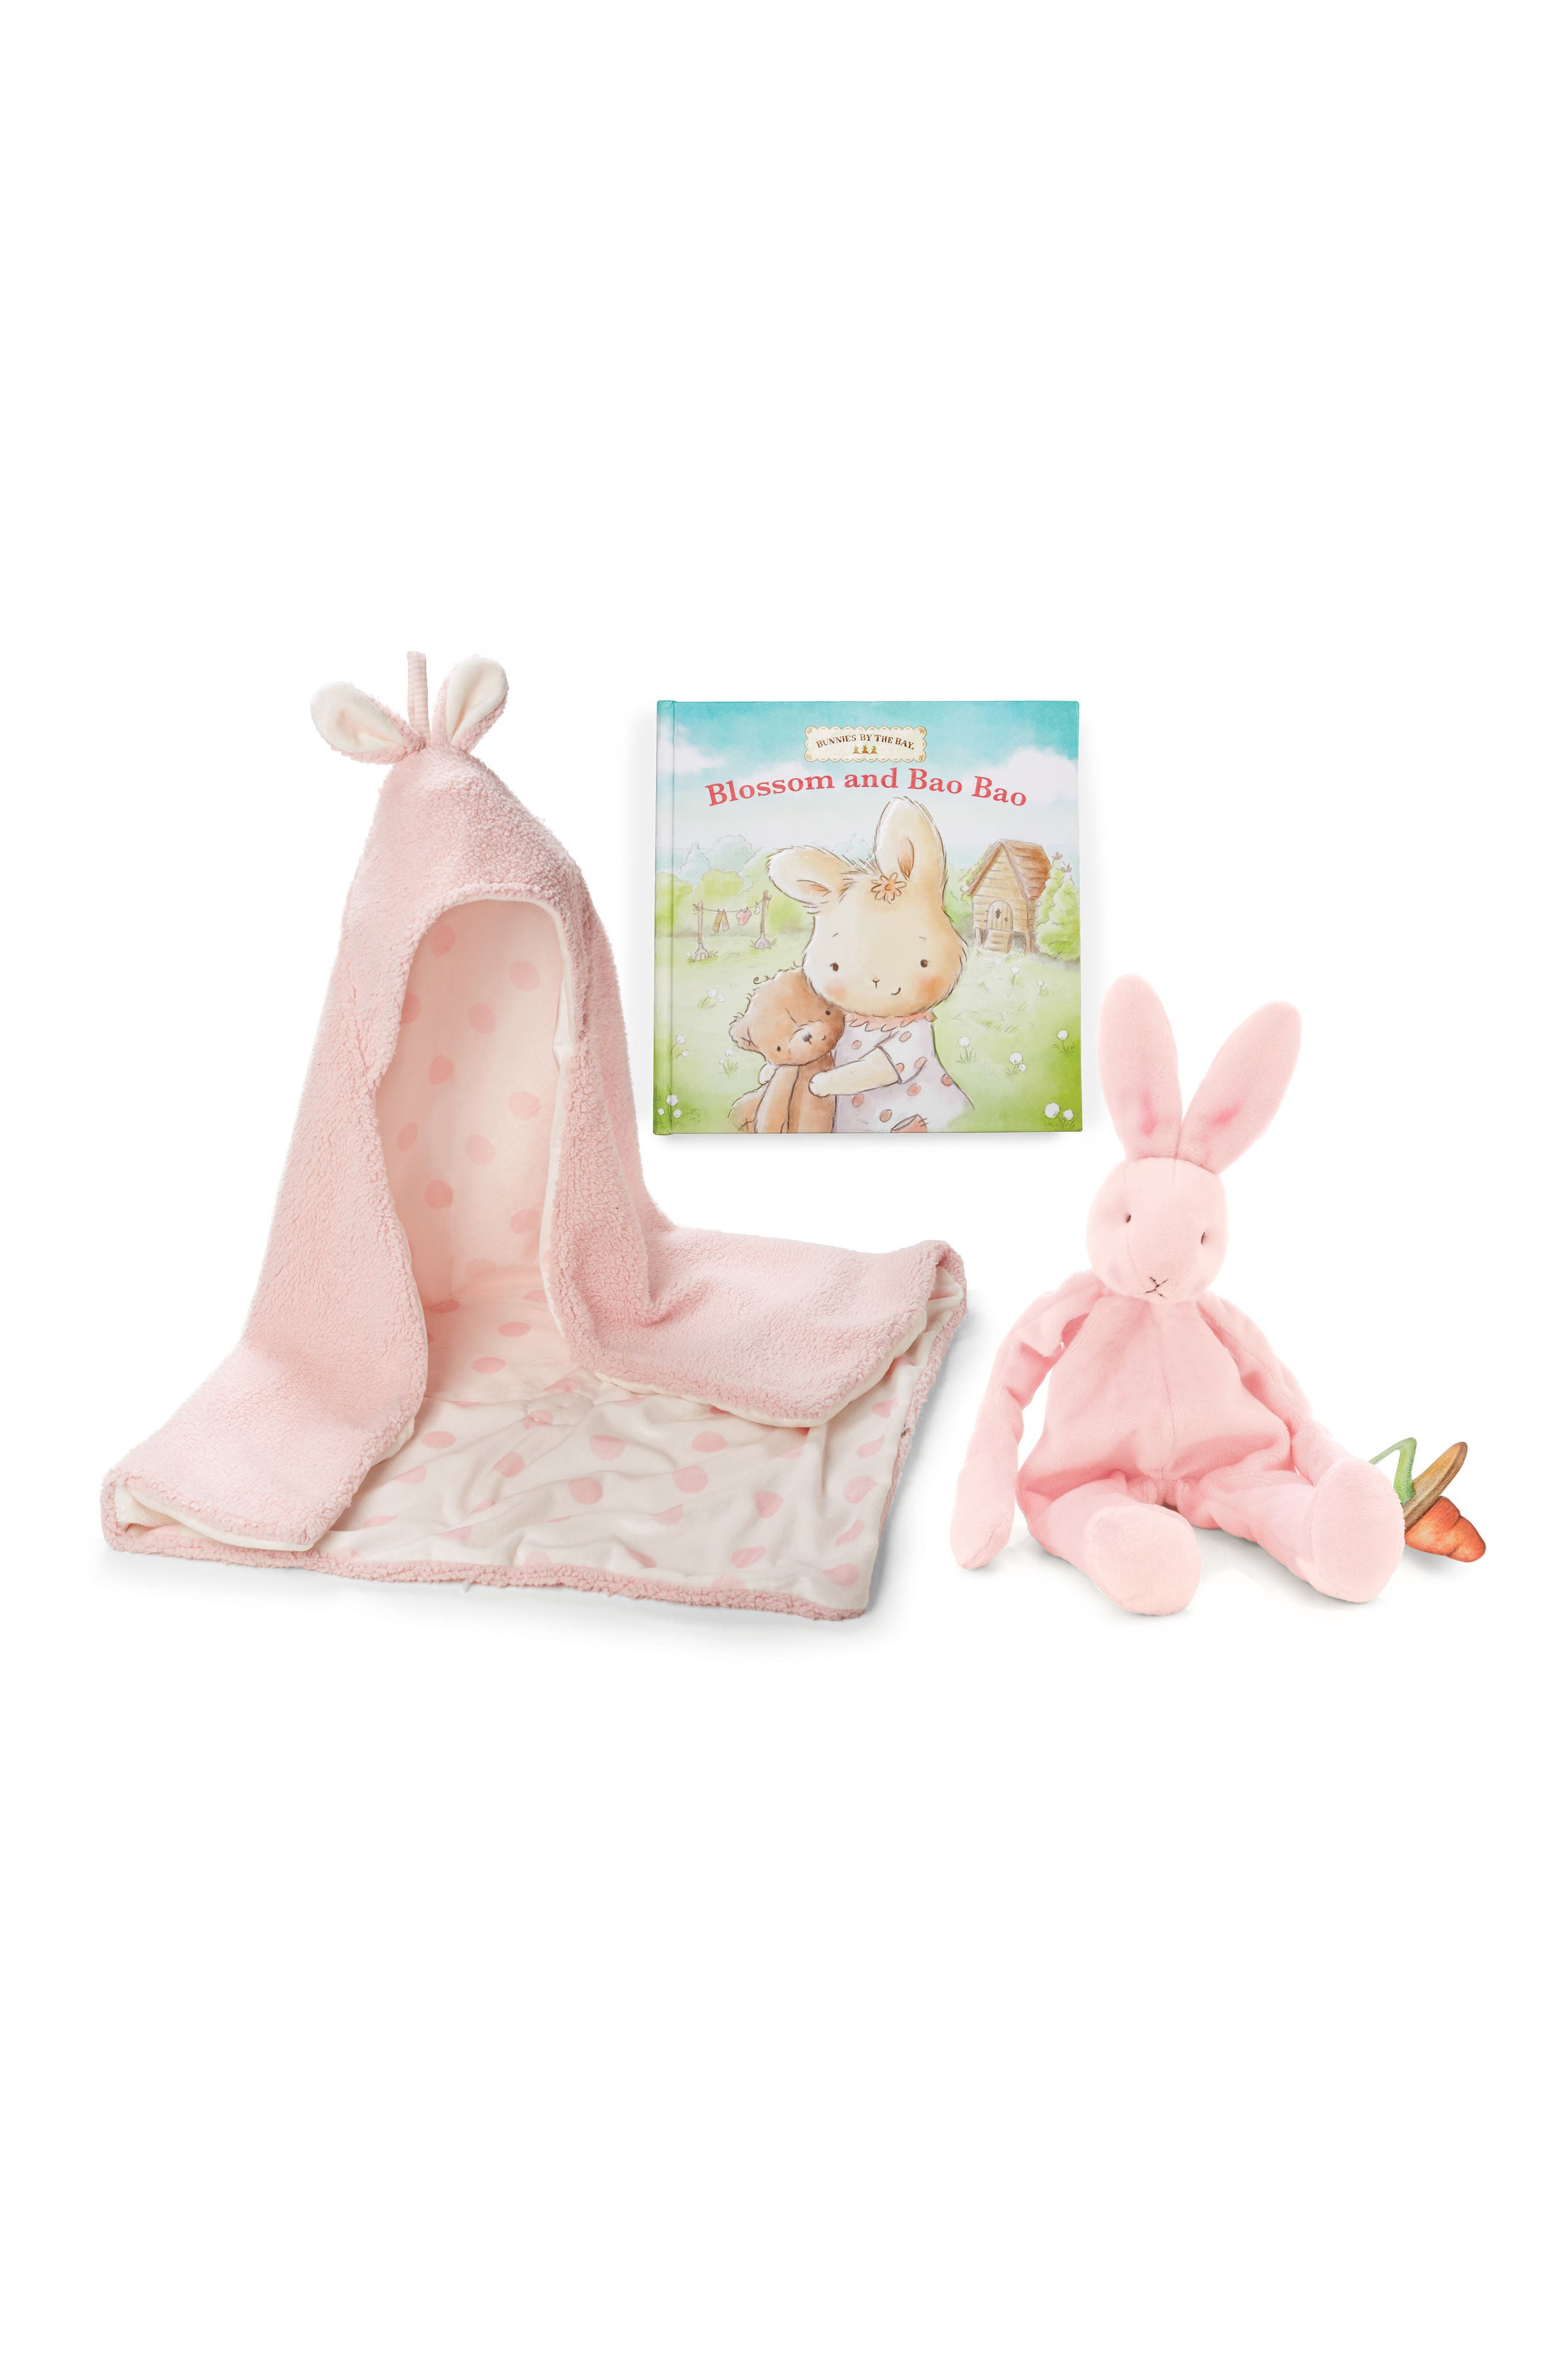 Main Image - Bunnies by the Bay Hooded Blanket, Stuffed Animal & Board Book Set